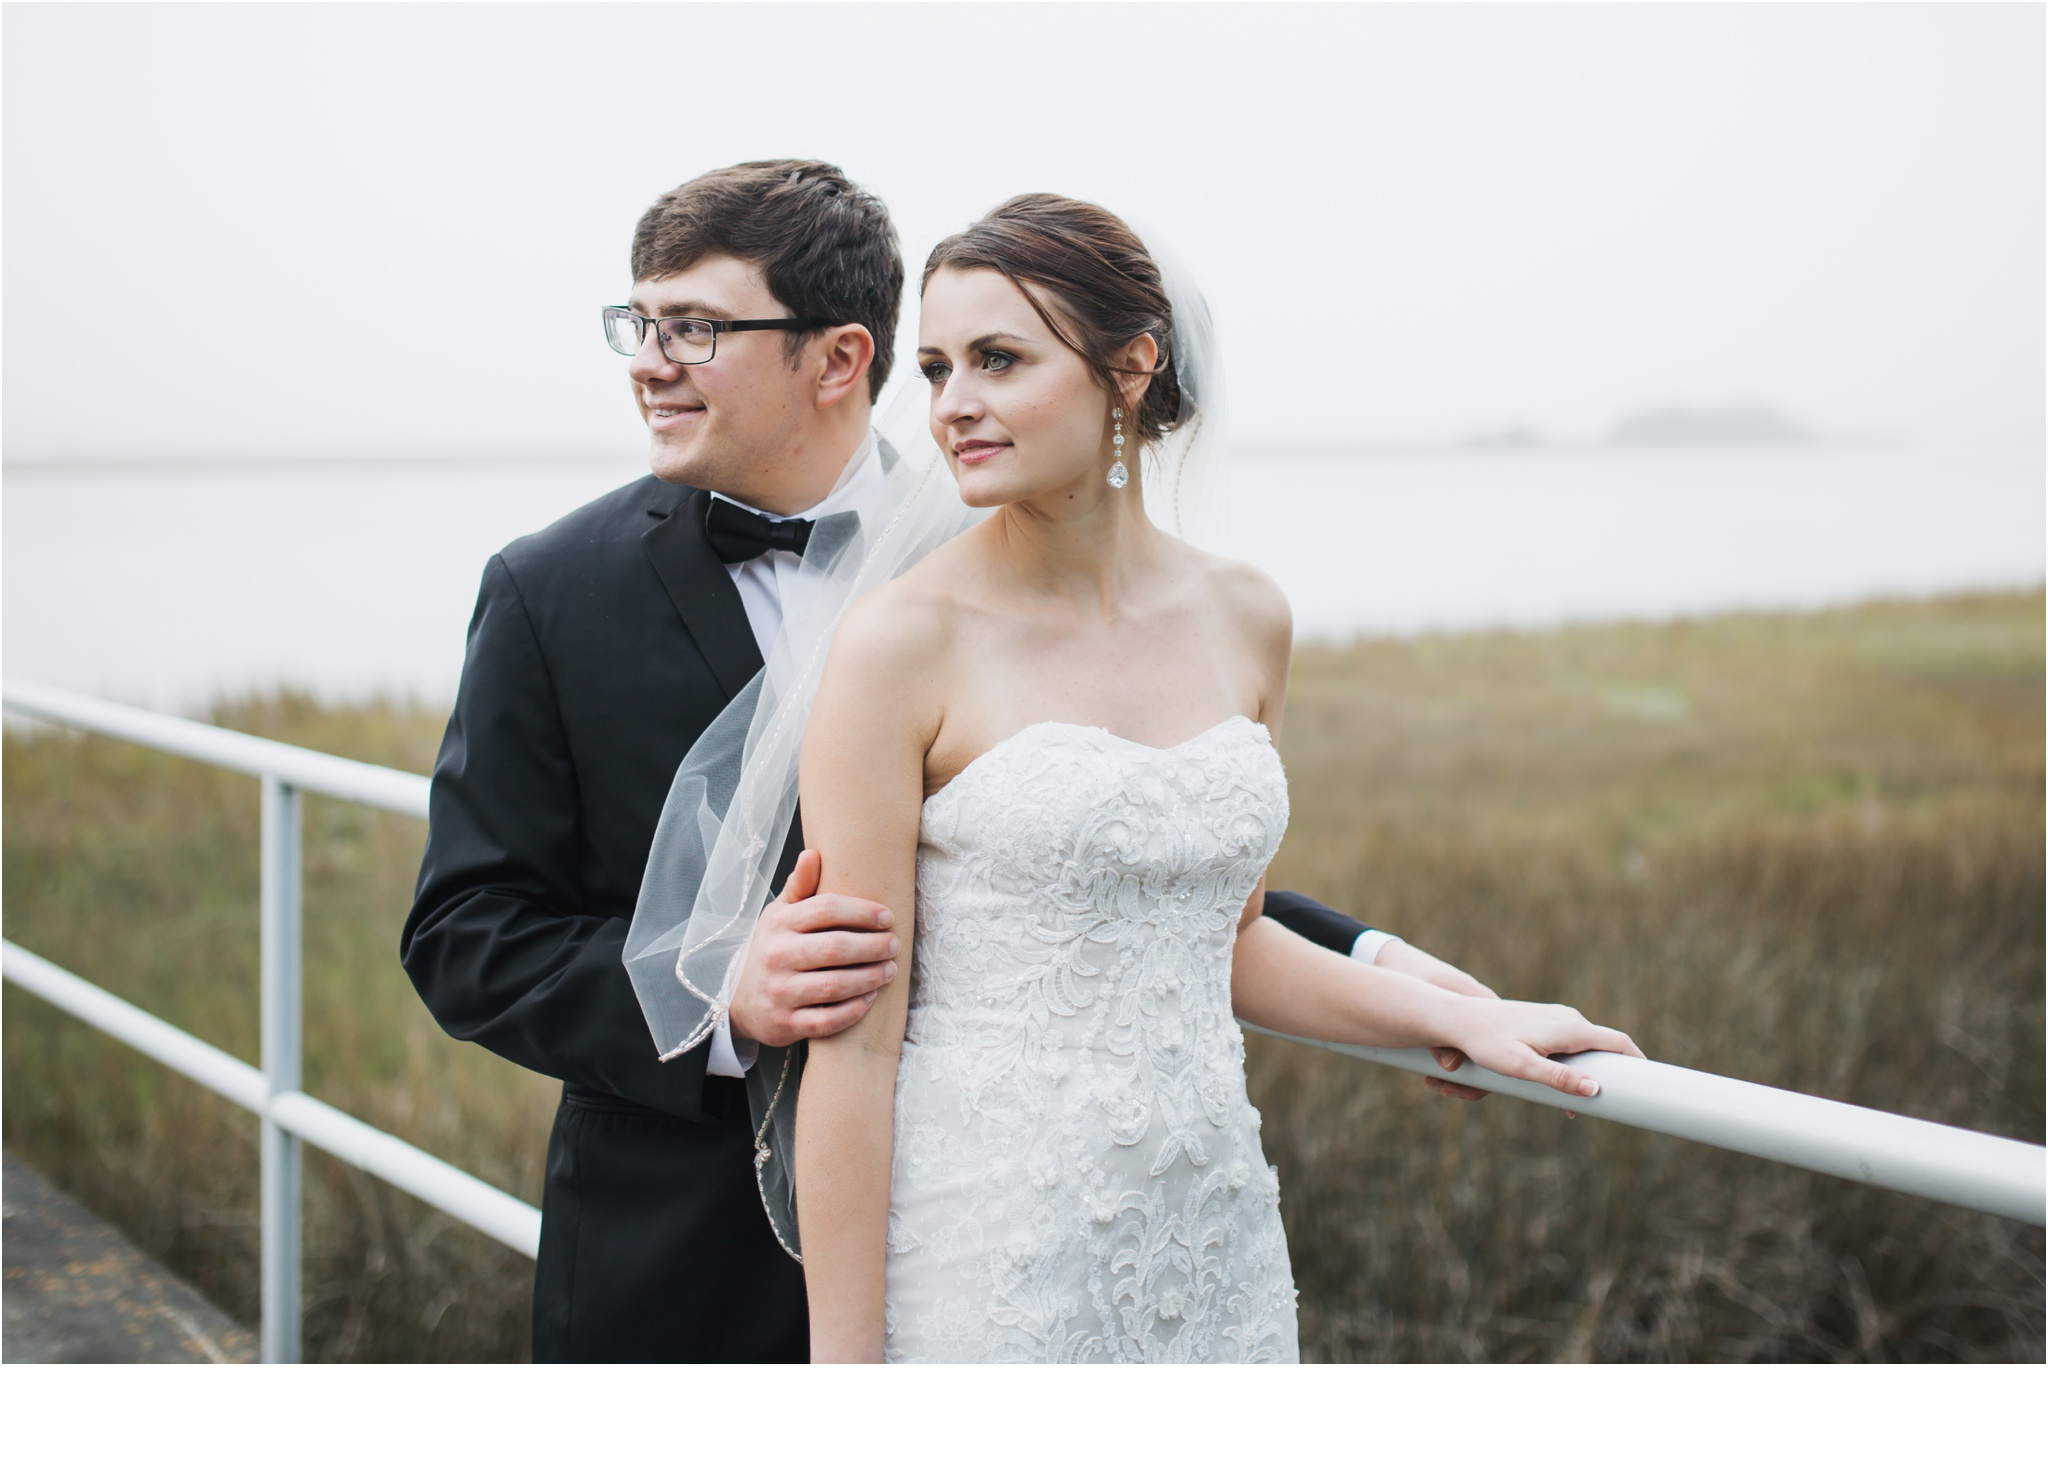 Rainey_Gregg_Photography_St._Simons_Island_Georgia_California_Wedding_Portrait_Photography_1717.jpg